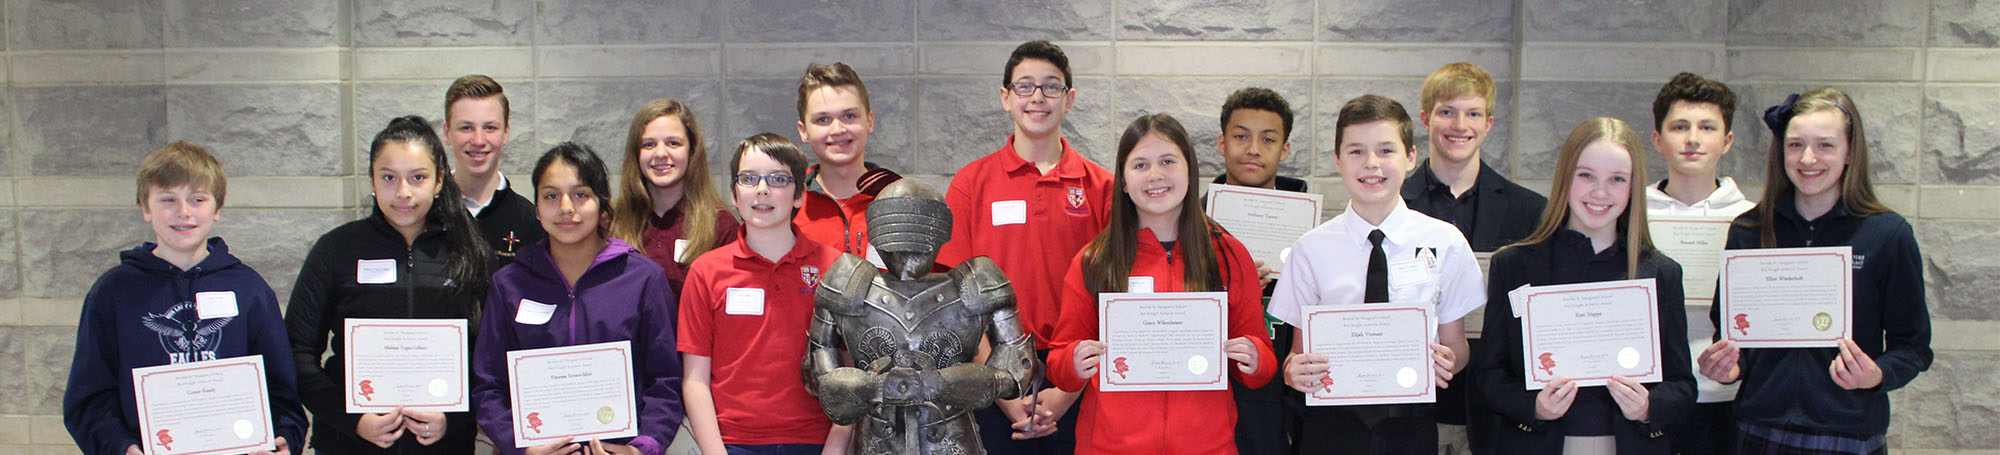 Partner school students attend Red Knight Achiever Lunch.